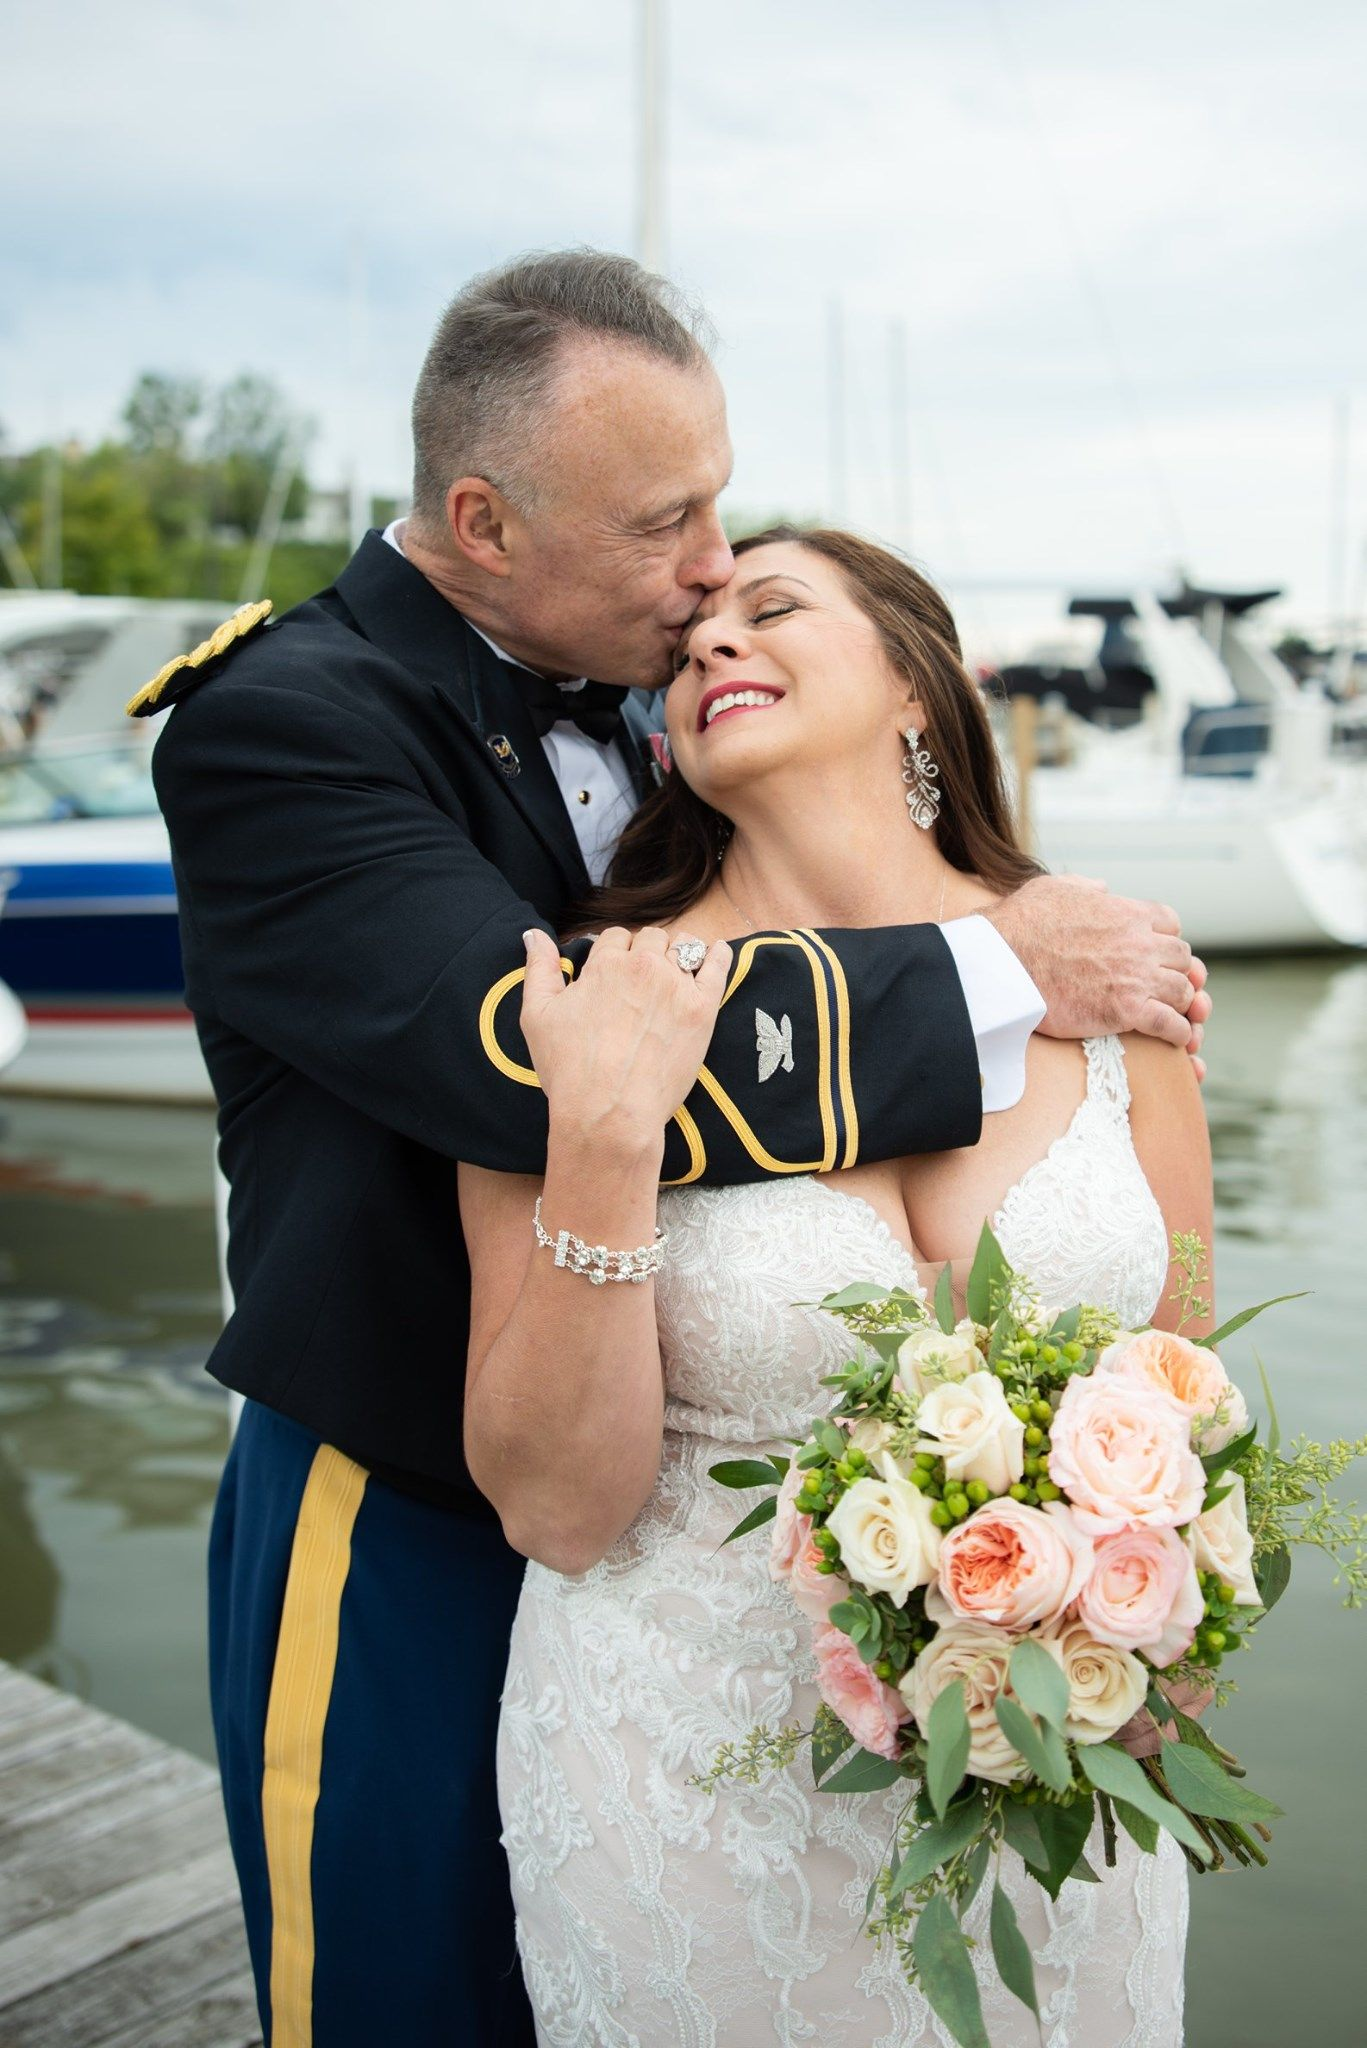 bride and groom at outdoor wedding, Cleveland Yachting Club, Ohio